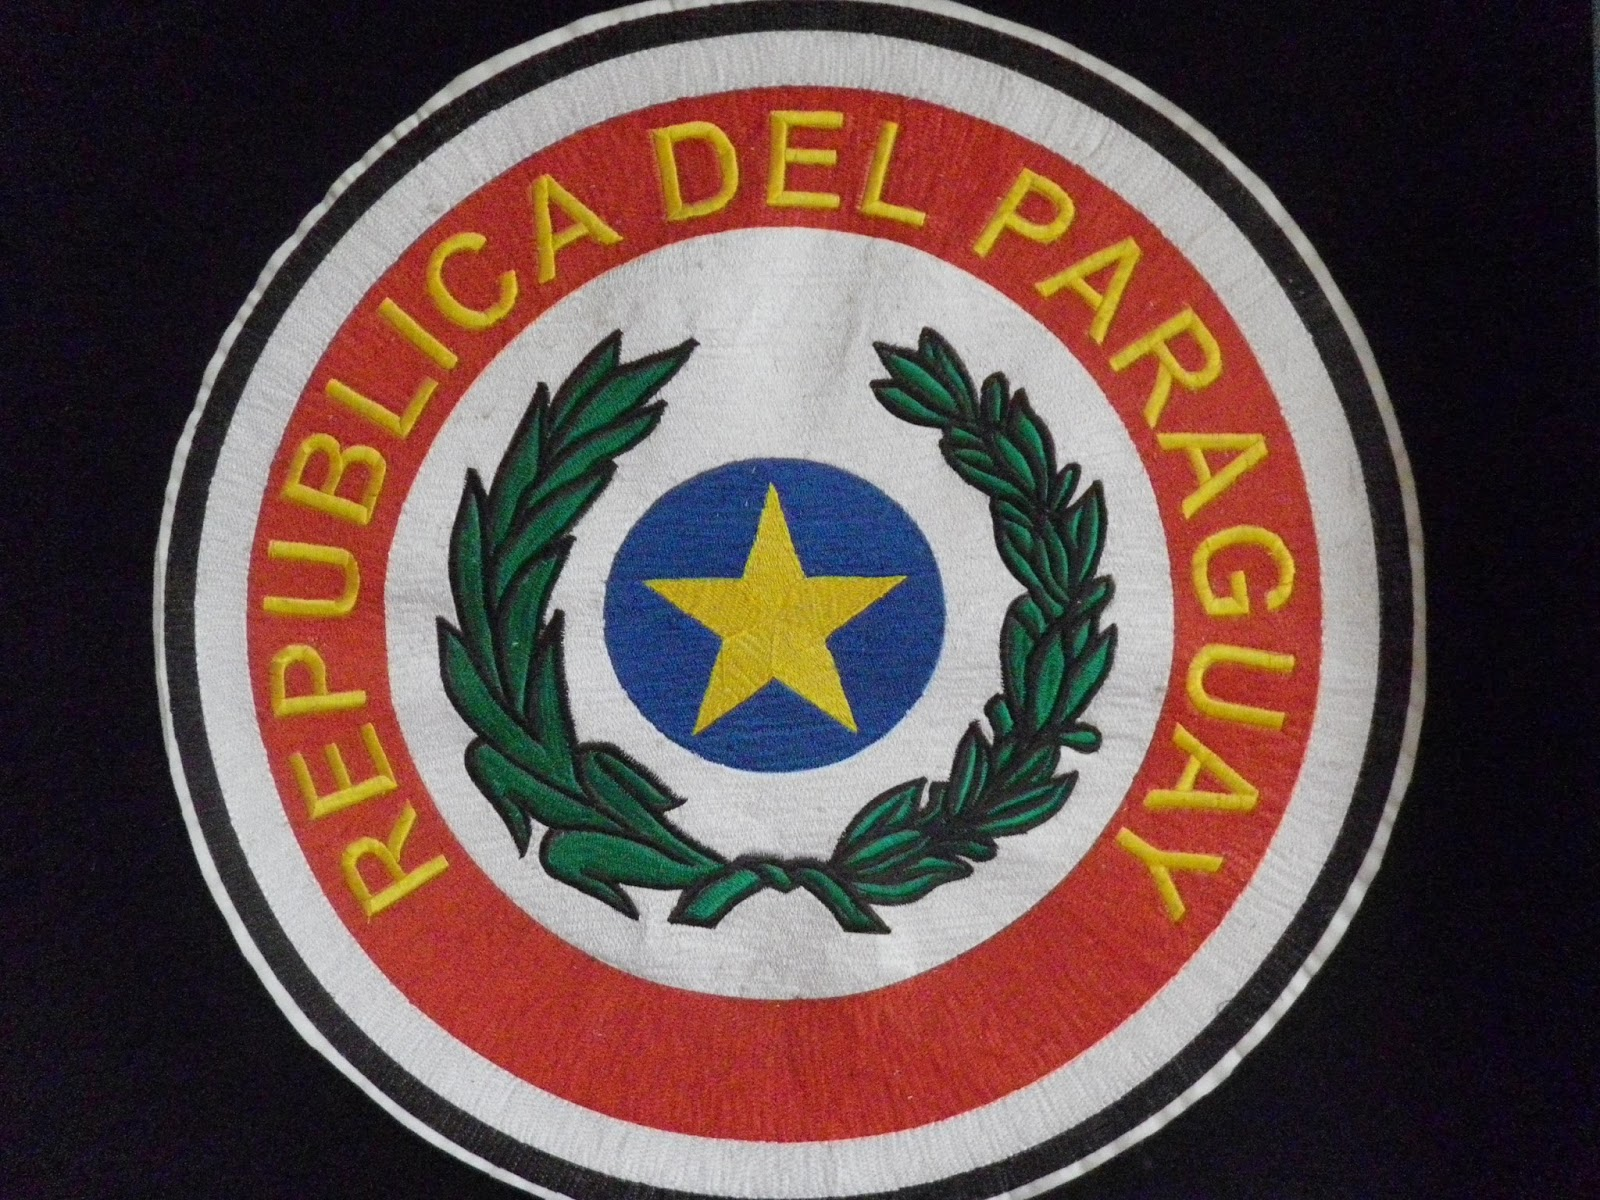 Paraguay flag symbol images symbol and sign ideas paraguay flag symbol images symbol and sign ideas paraguay flag symbol buycottarizona buycottarizona buycottarizona